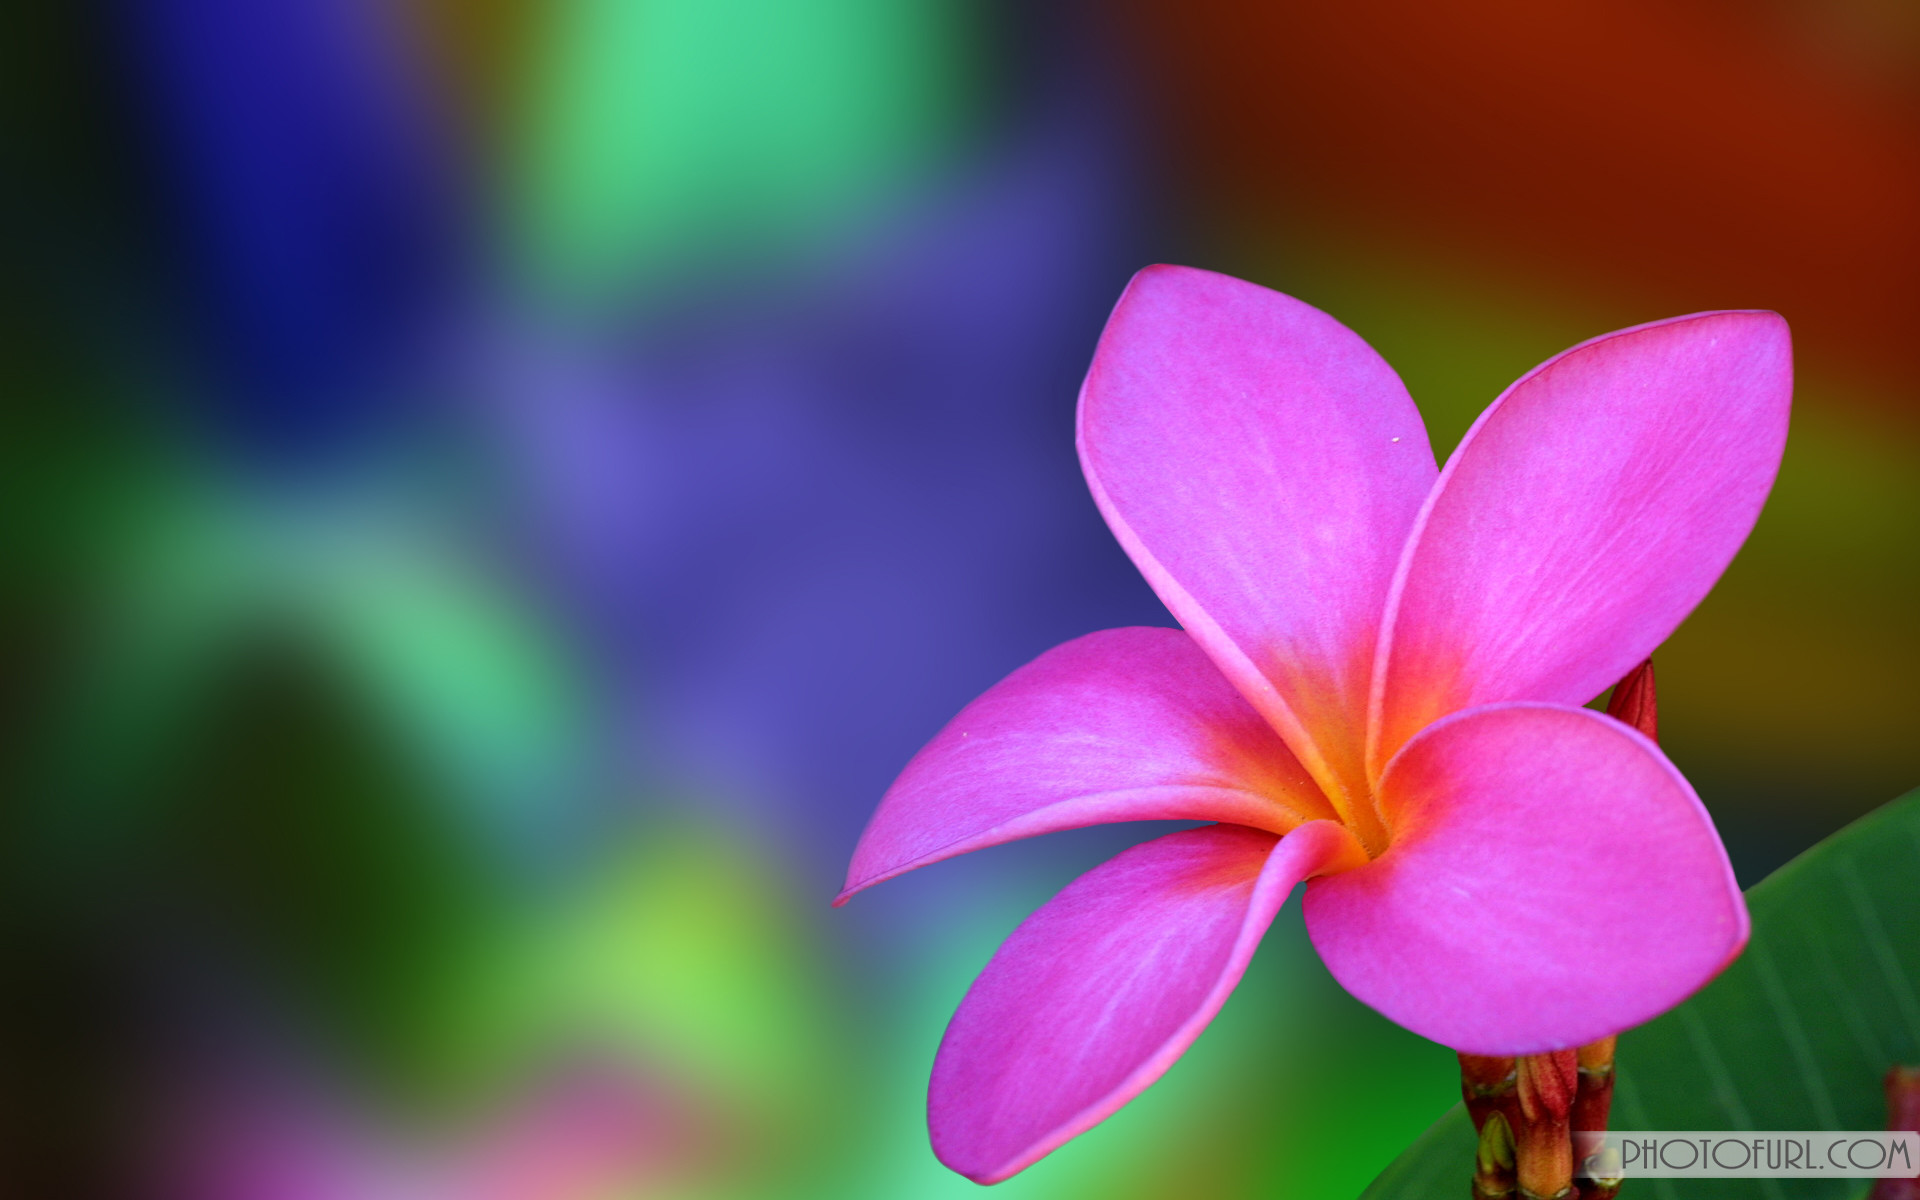 Res: 1920x1200, screen, wallpaper, flower, computer, scenery, wallpapers, laptops